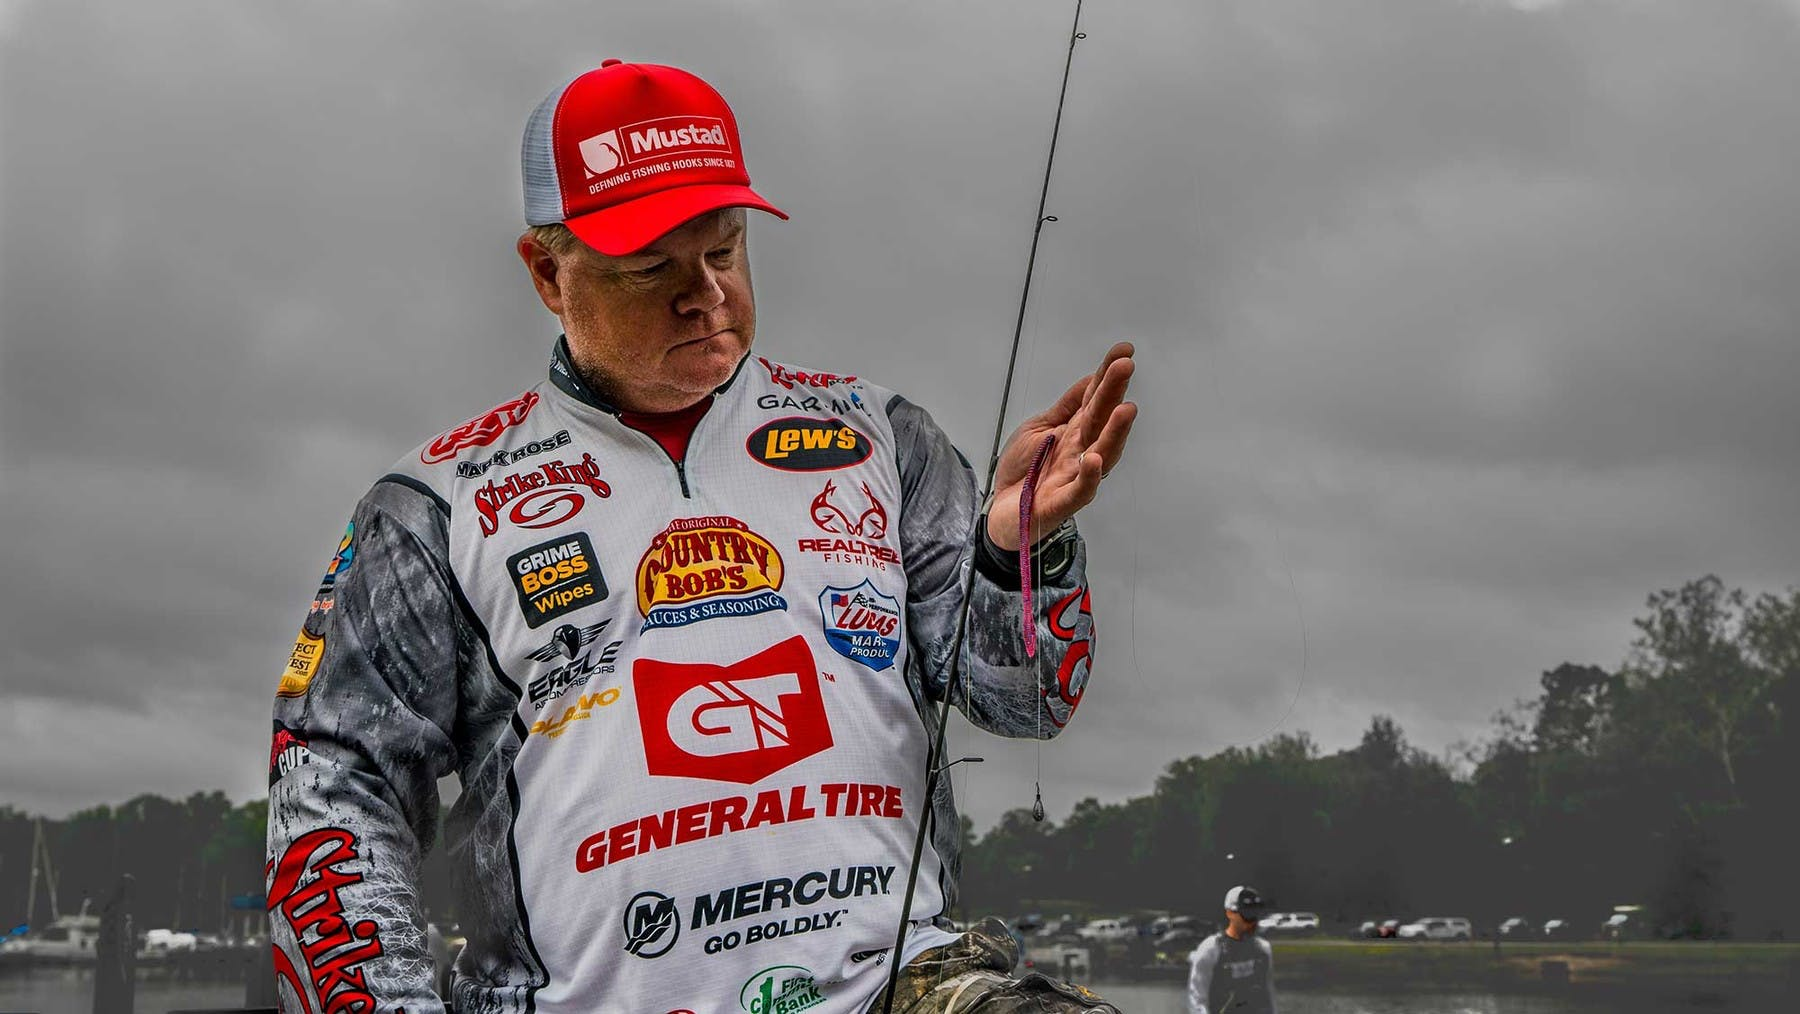 Portrait photo of American pro staffer Mark Rose holding up a rod rigged with a soft plastic bait.